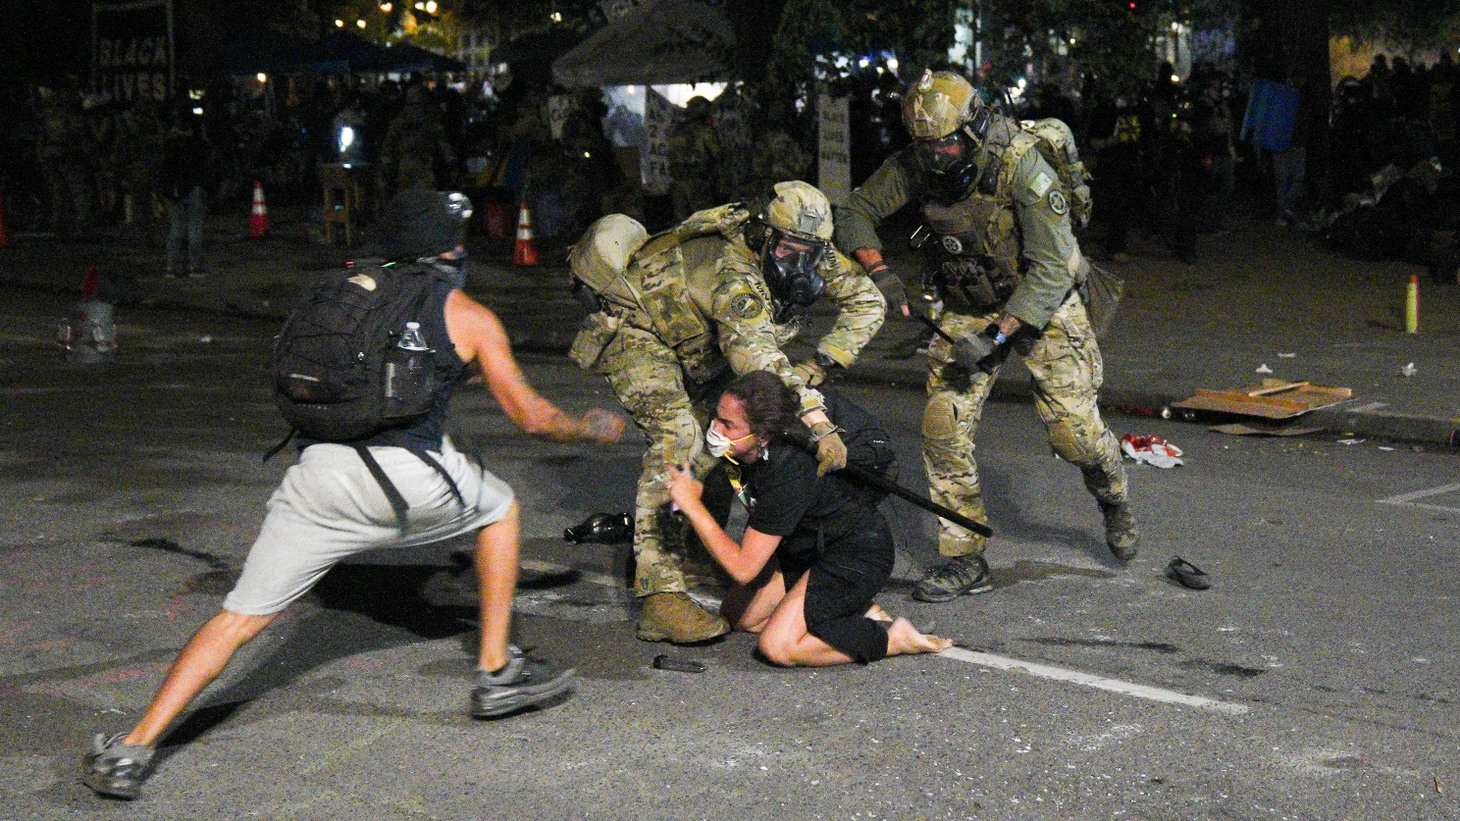 """Federal agents try to detain a woman while a protester tries to """"de-arrest"""" her on July 27, 2020, outside of the federal courthouse in Portland, Oregon."""